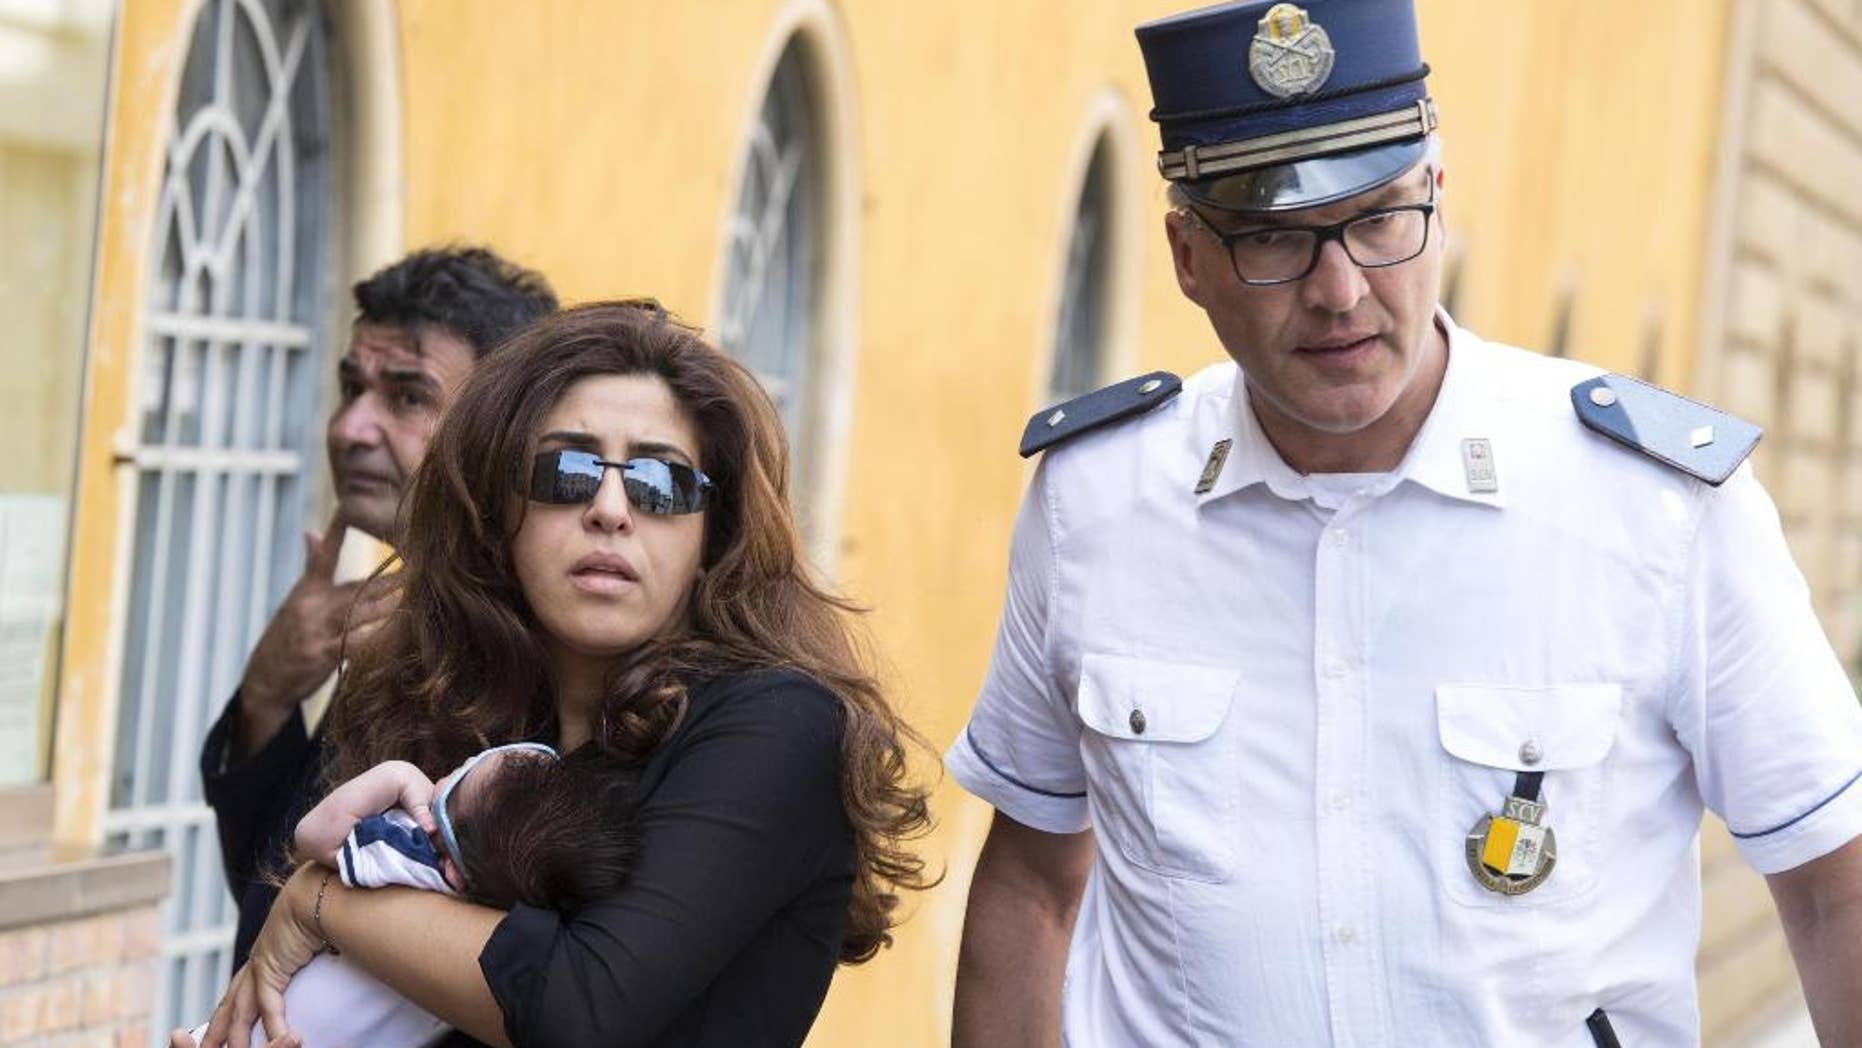 Public relations expert Francesca Chaouqui walks next a Vatican Gendarme as she arrives at the Vatican for her trial.